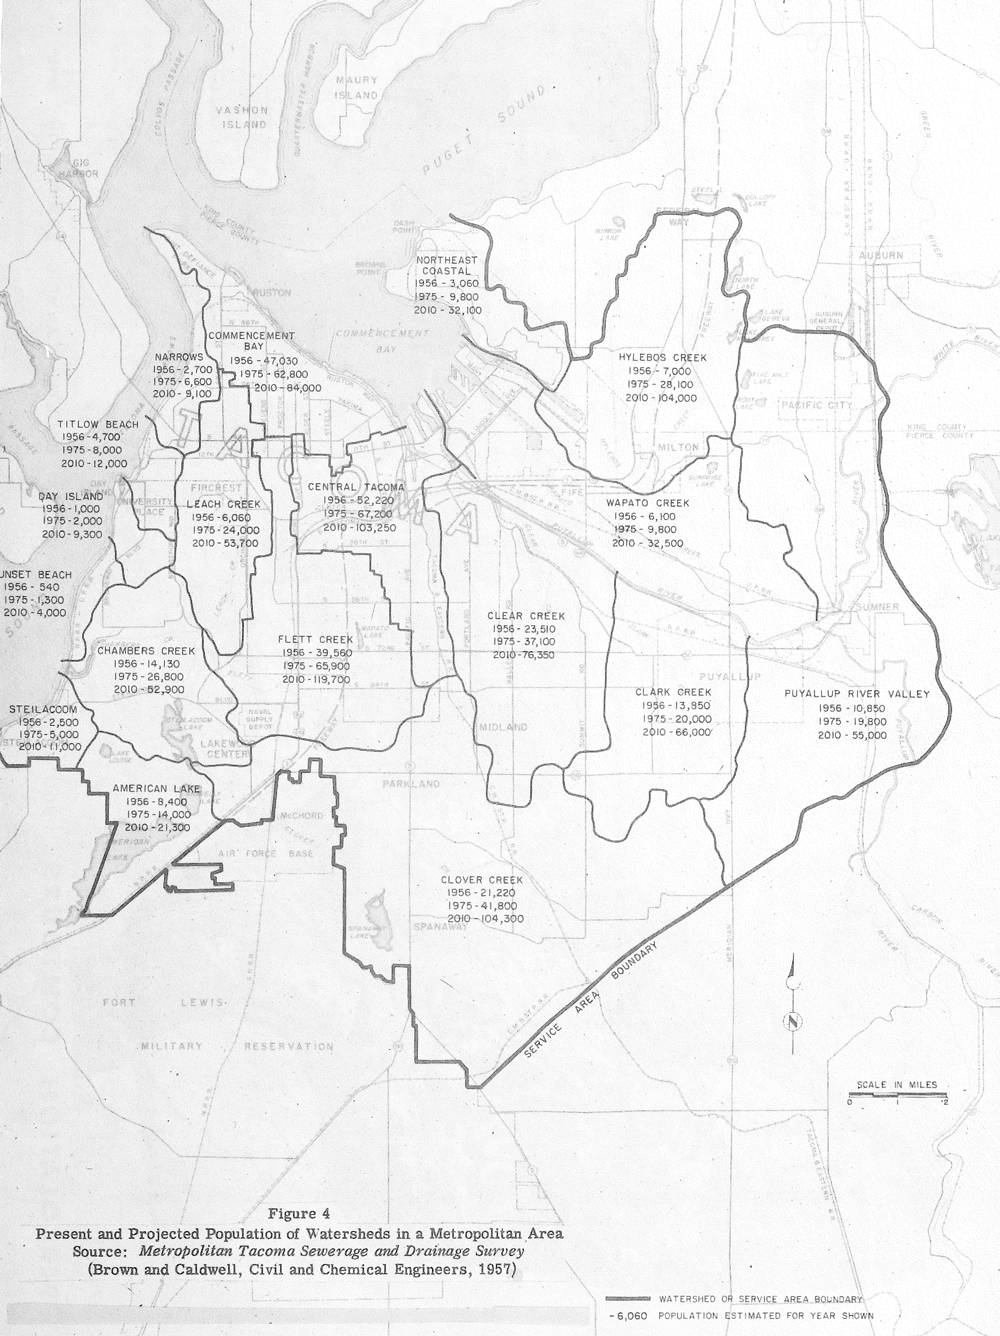 Figure 4. Present and Projected Population of Watersheds in a Metropolitan Area. Source: Metropolitan Tacoma Sewerage and Drainage Survey (Brown and Caldwell, Civil and Chemical Engineers, 1957).